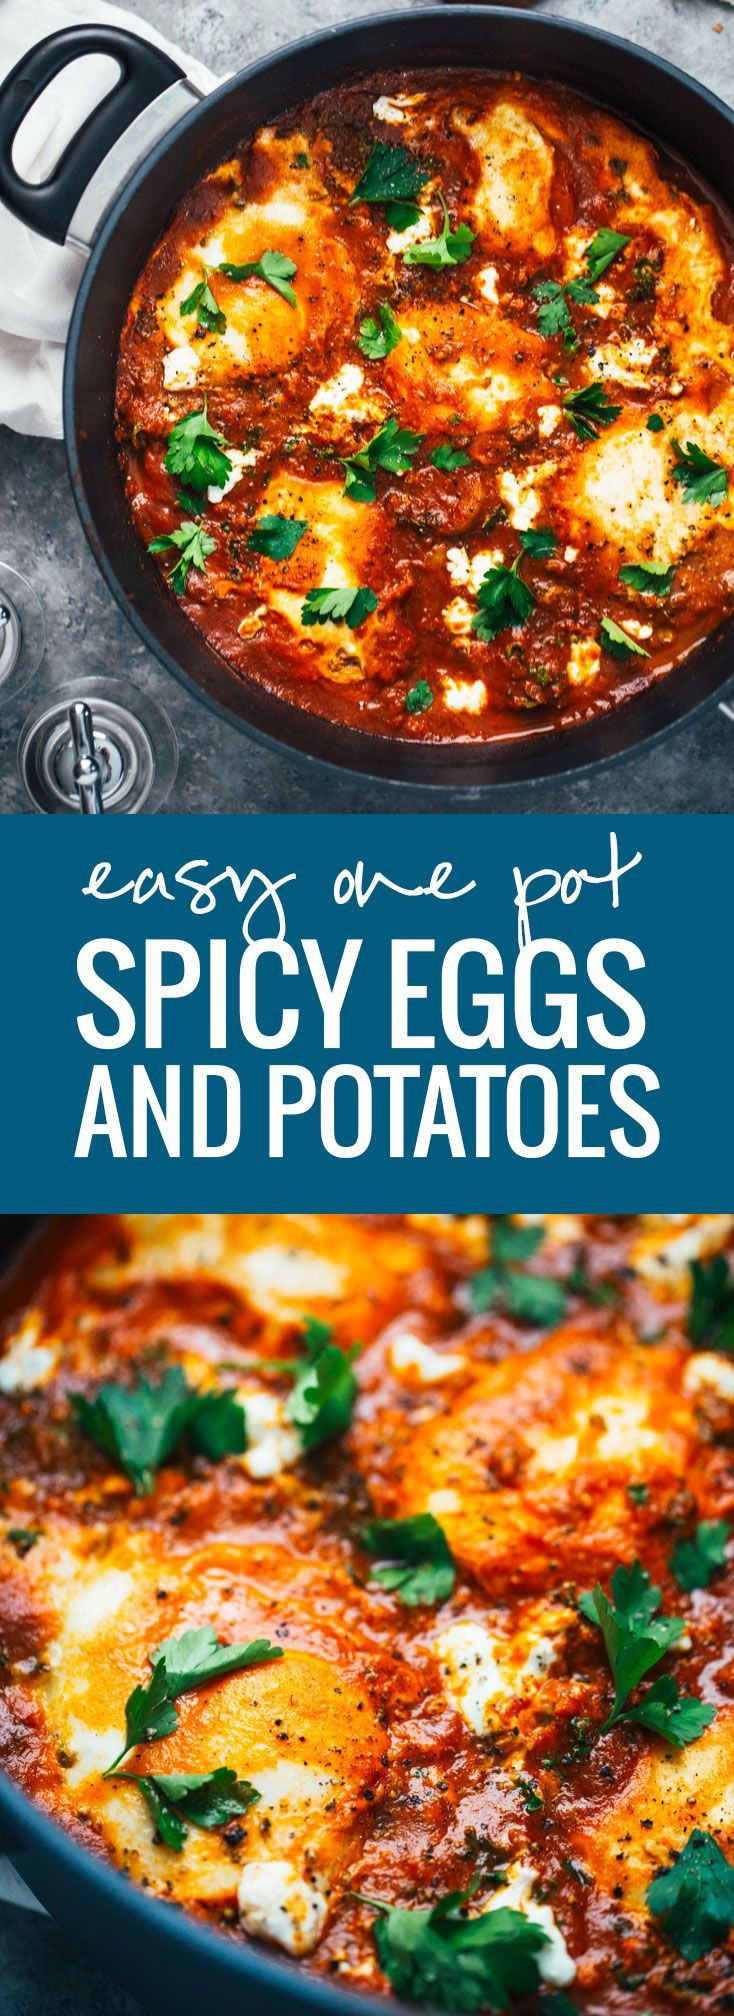 One-Pot Spicy Eggs and Potatoes - spicy pan-fried potatoes, kale, creamy eggs, and goat cheese in a simple homemade sauce. Spicy, creamy and delicious! 350 calories.